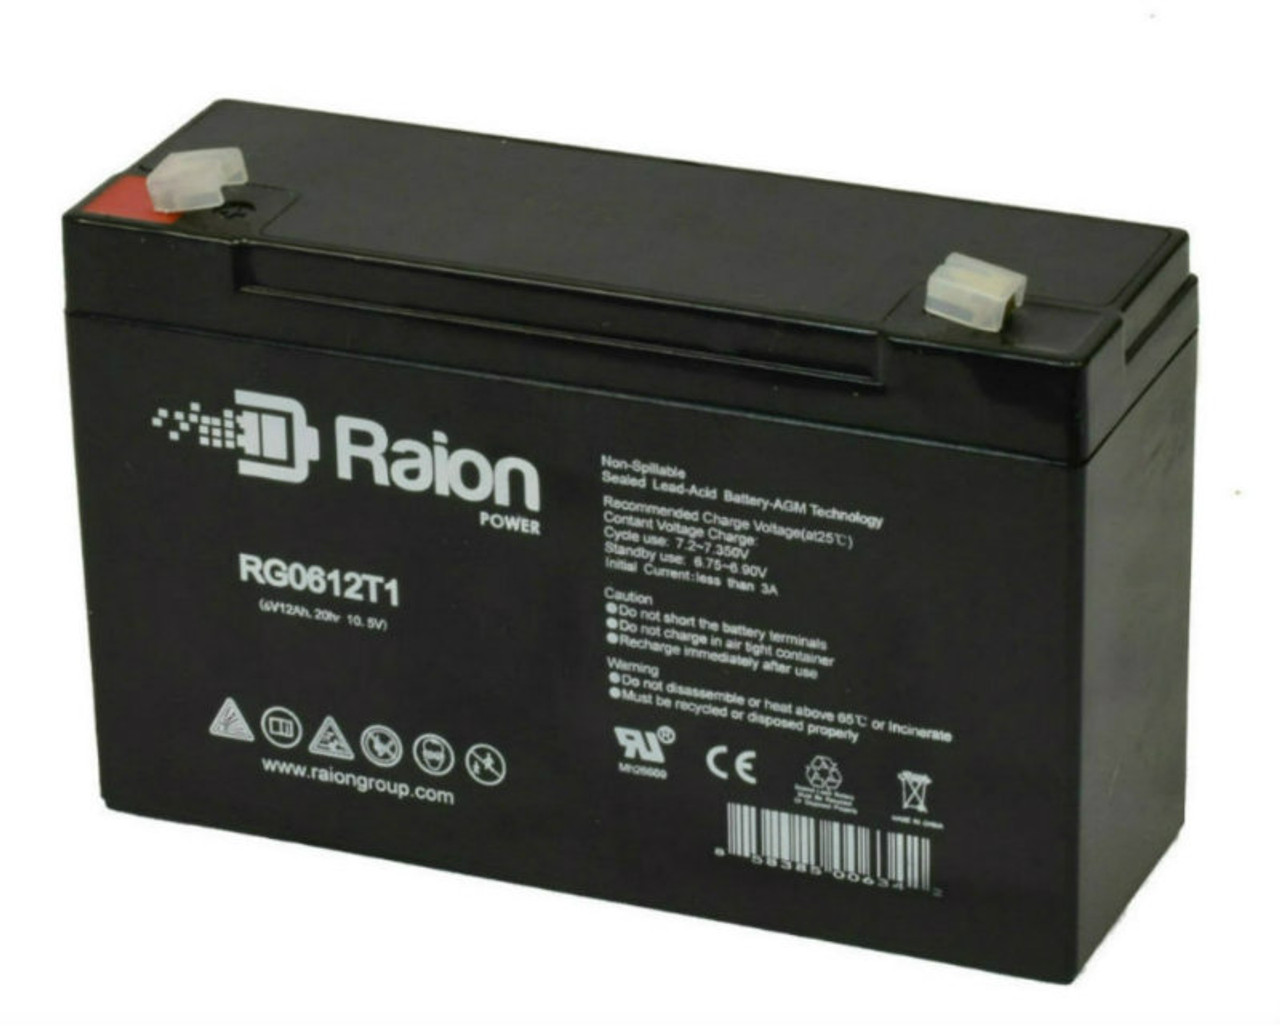 Raion Power RG06120T1 Replacement Battery Pack for Sonnenschein A506/10S emergency light